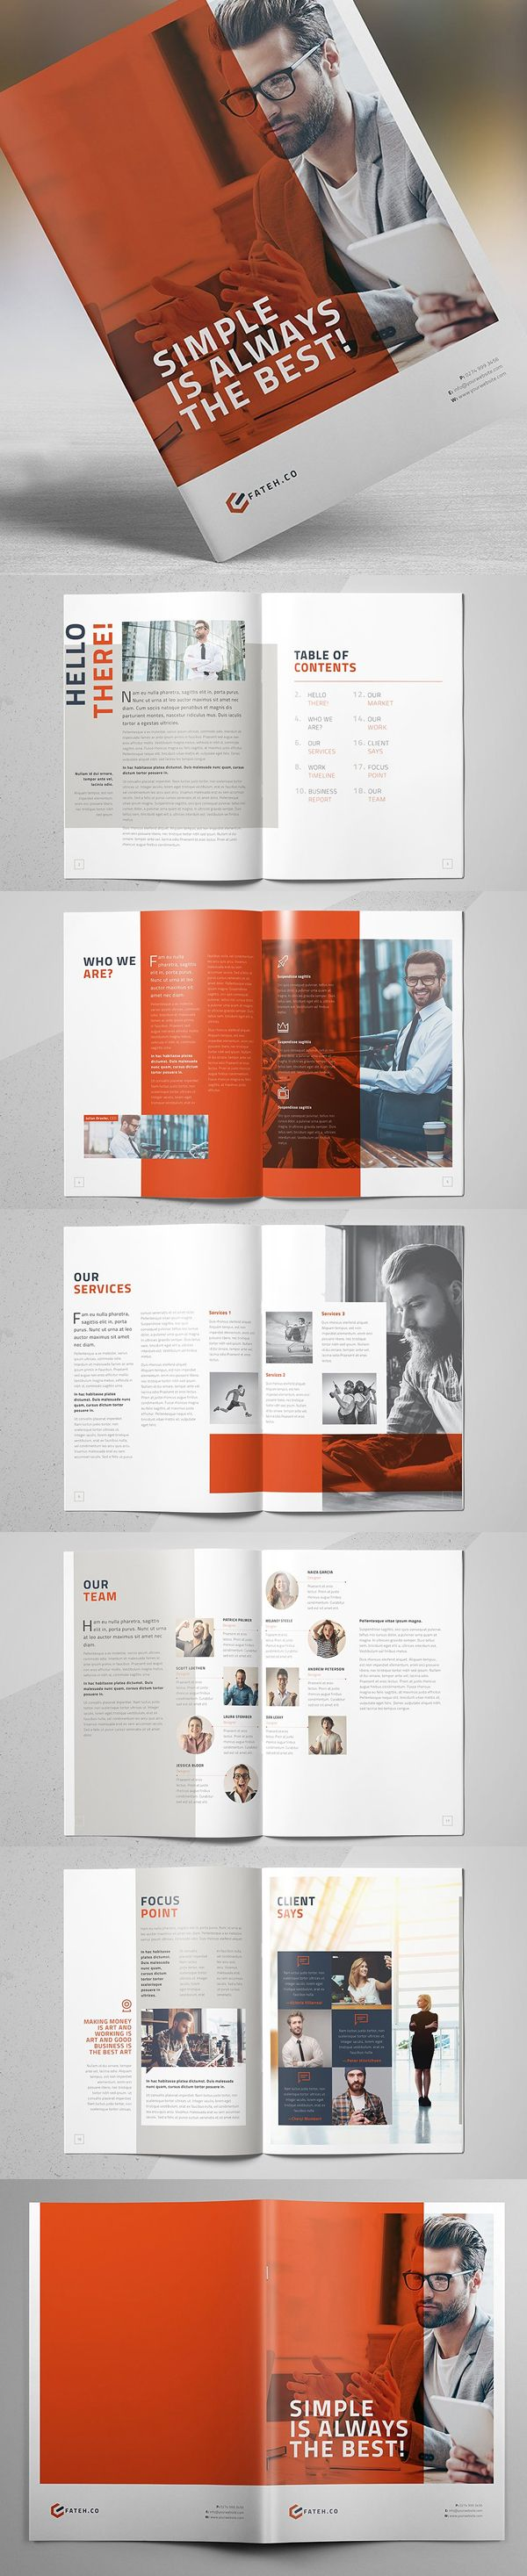 Business Brochure Template Pages Layout Designs Pinterest - Brochure template for pages